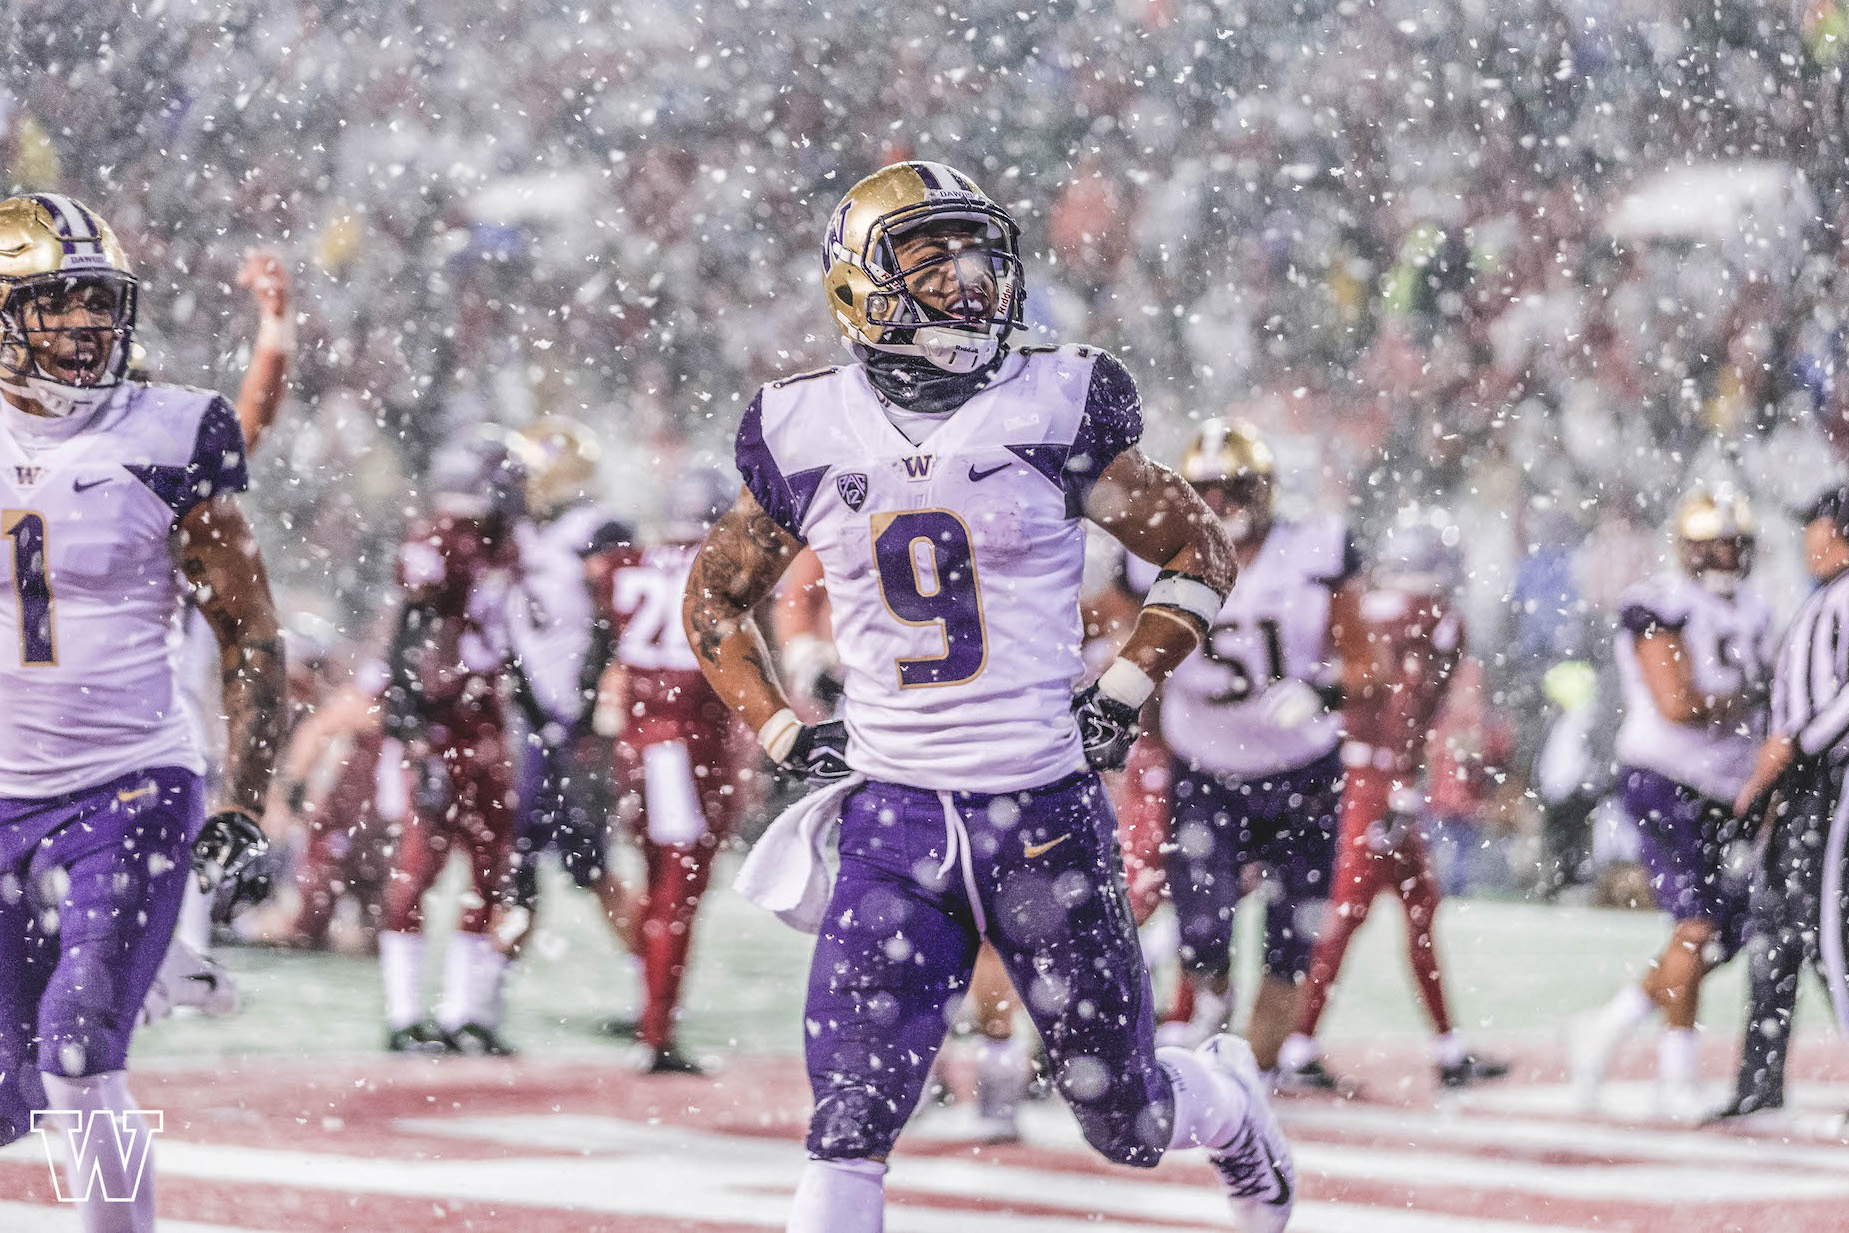 Myles Gaskin, ncaa football, gaskin, myles, running back myles gaskin, nfl running back, uw husky running back, pac 12, gaskin football, myles football, washington football, husky, huskies